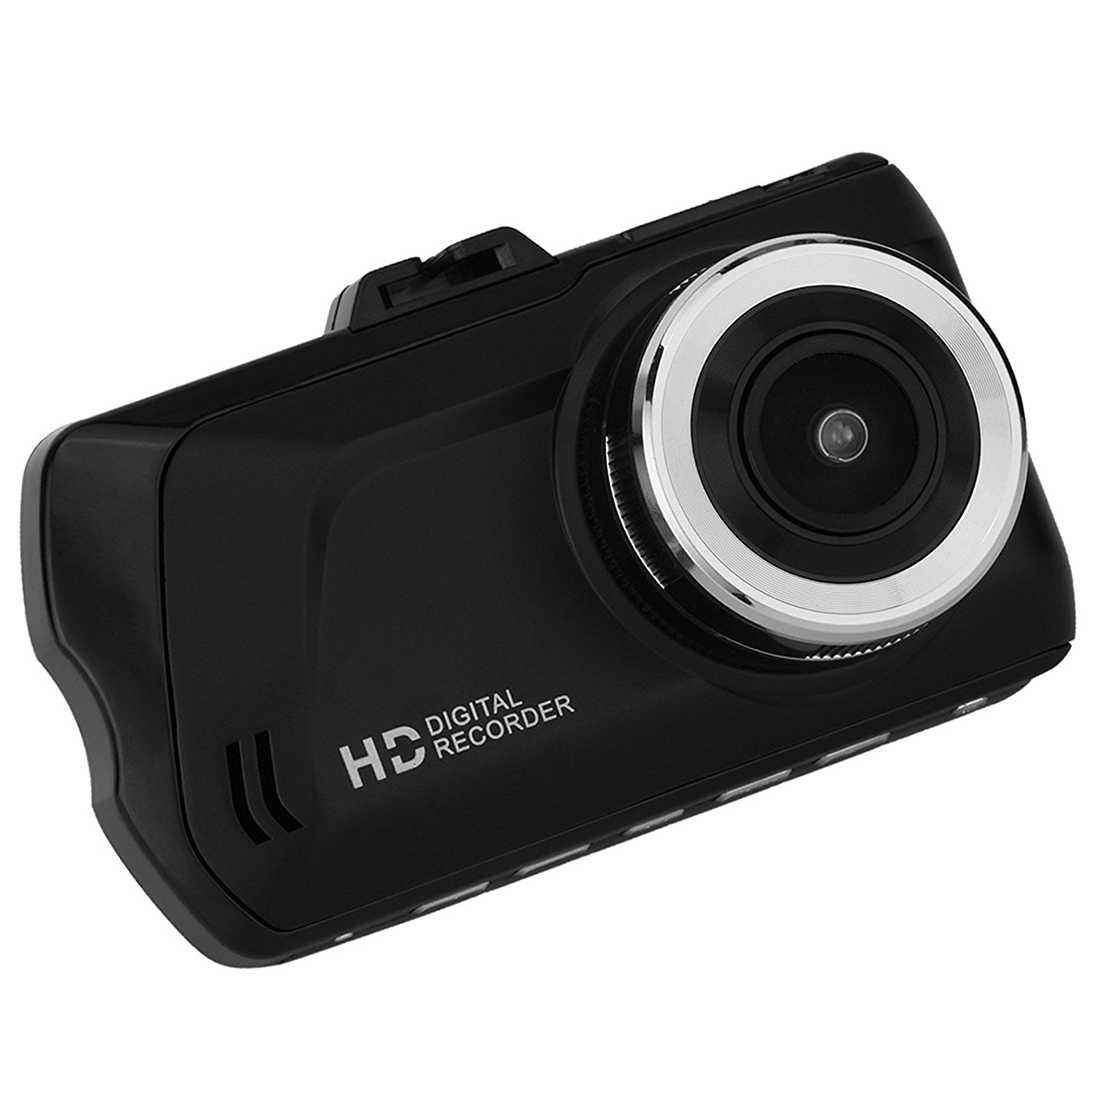 Dash Cam, Dashboard Camera Recorder with 4 Wide Digital Zoom, Car Black Box with 3.0 inch IPS, 1080P FHD, G-Sensor, WDR, Loop